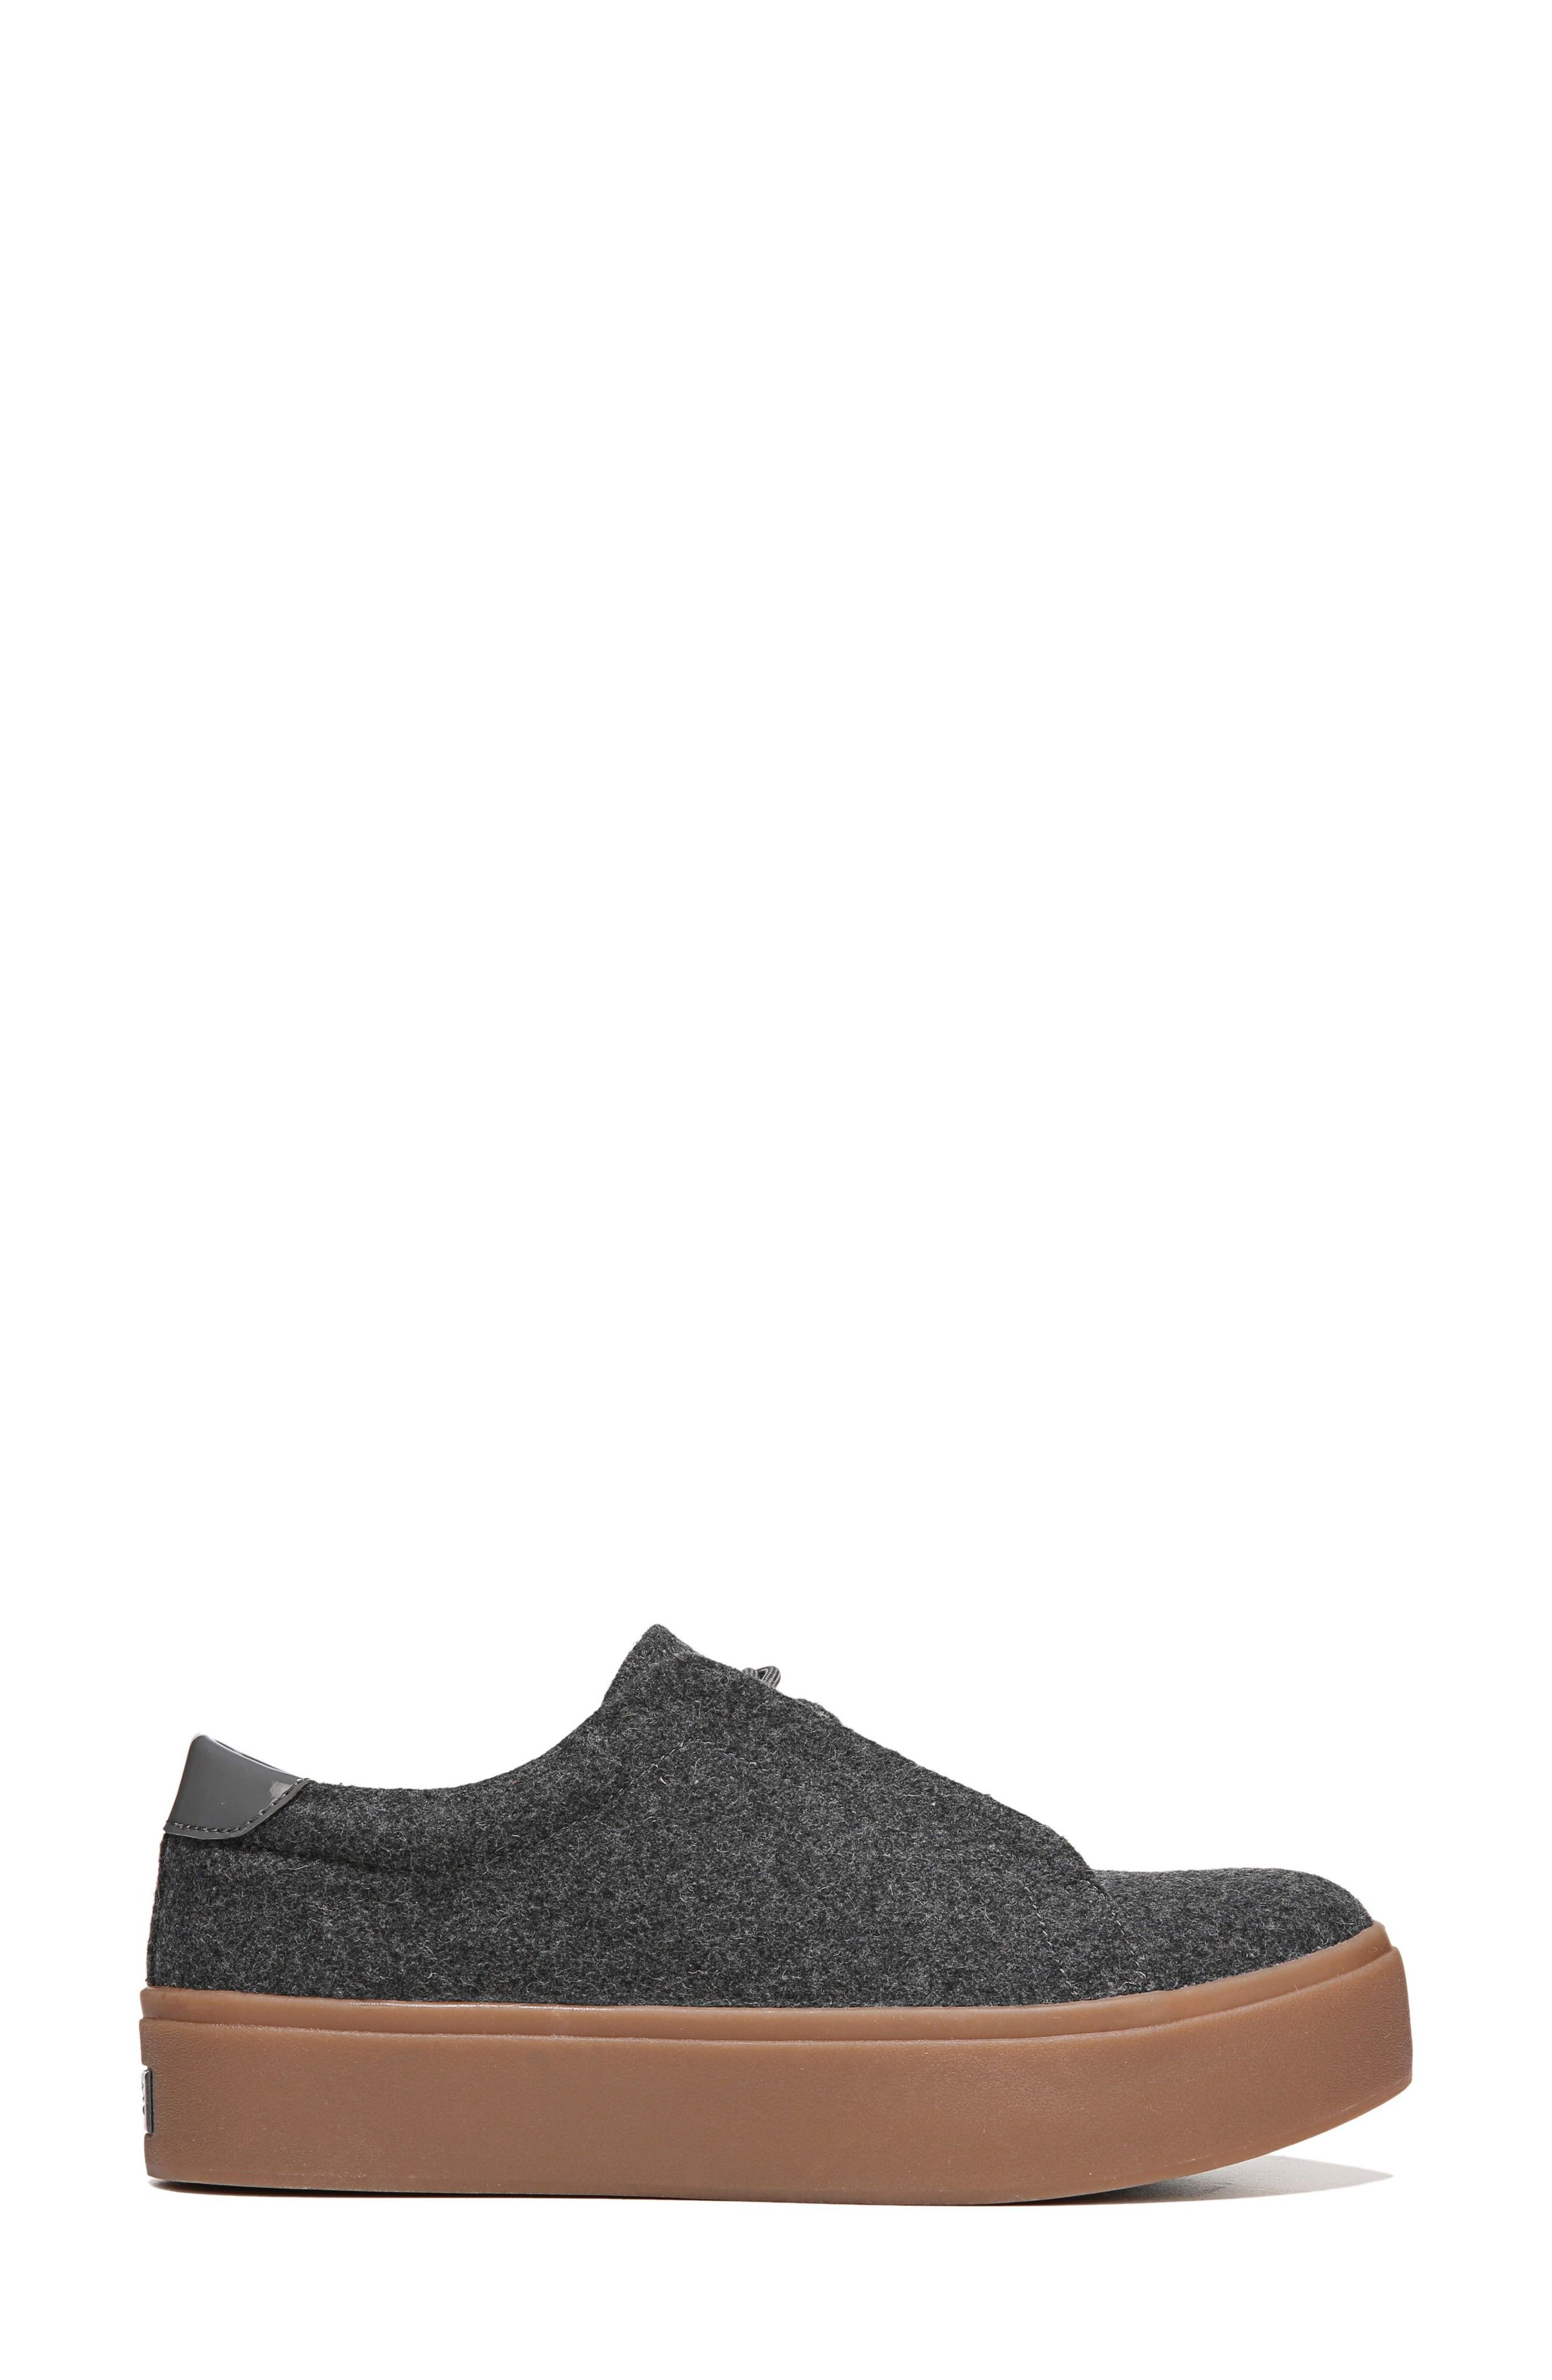 Abbot Sneaker,                             Alternate thumbnail 3, color,                             Charcoal Fabric